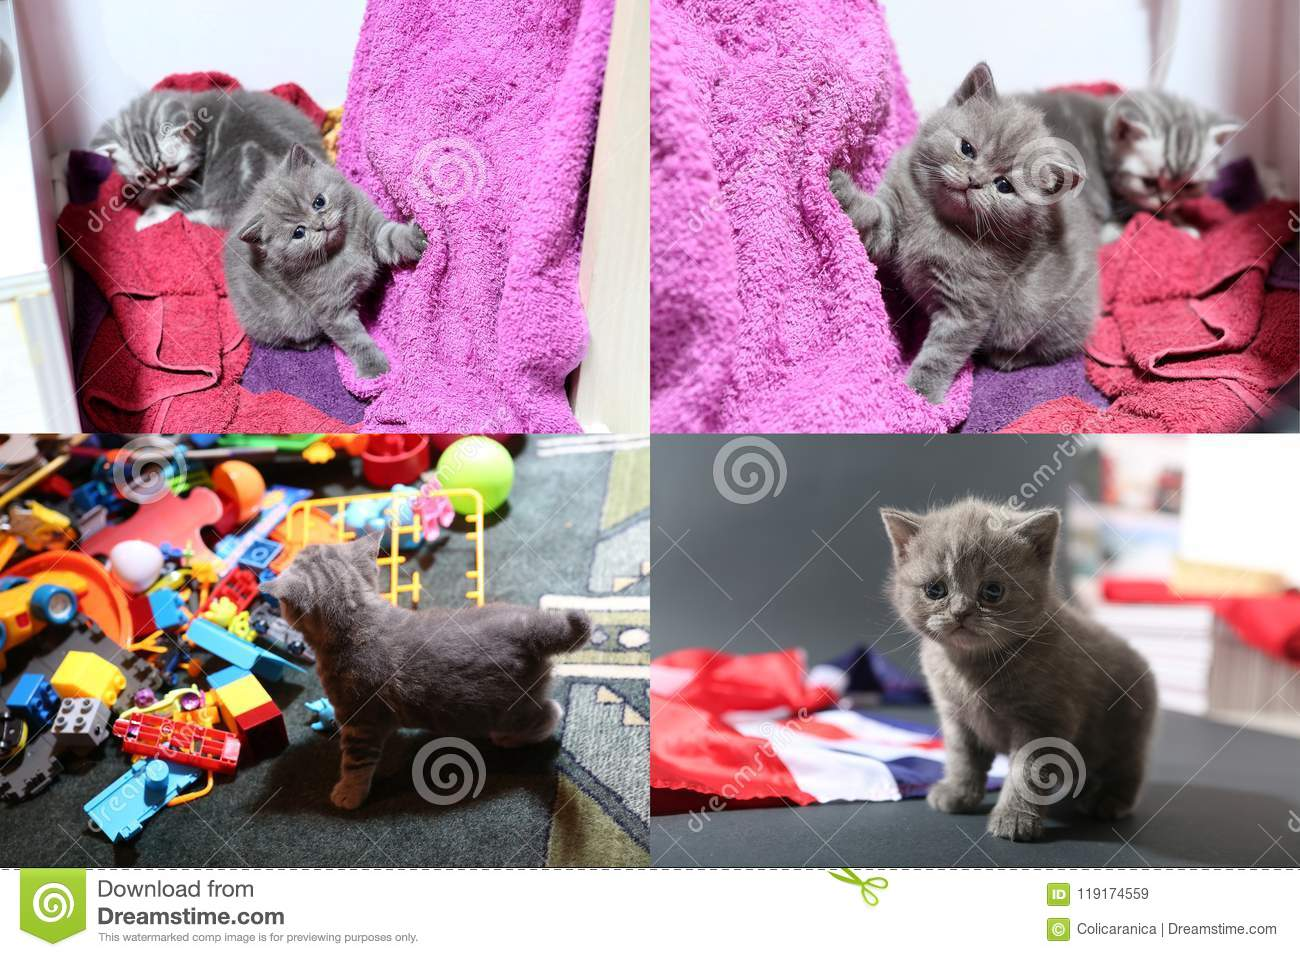 Baby kittens playing with toys and with Great Britain flag, multicam